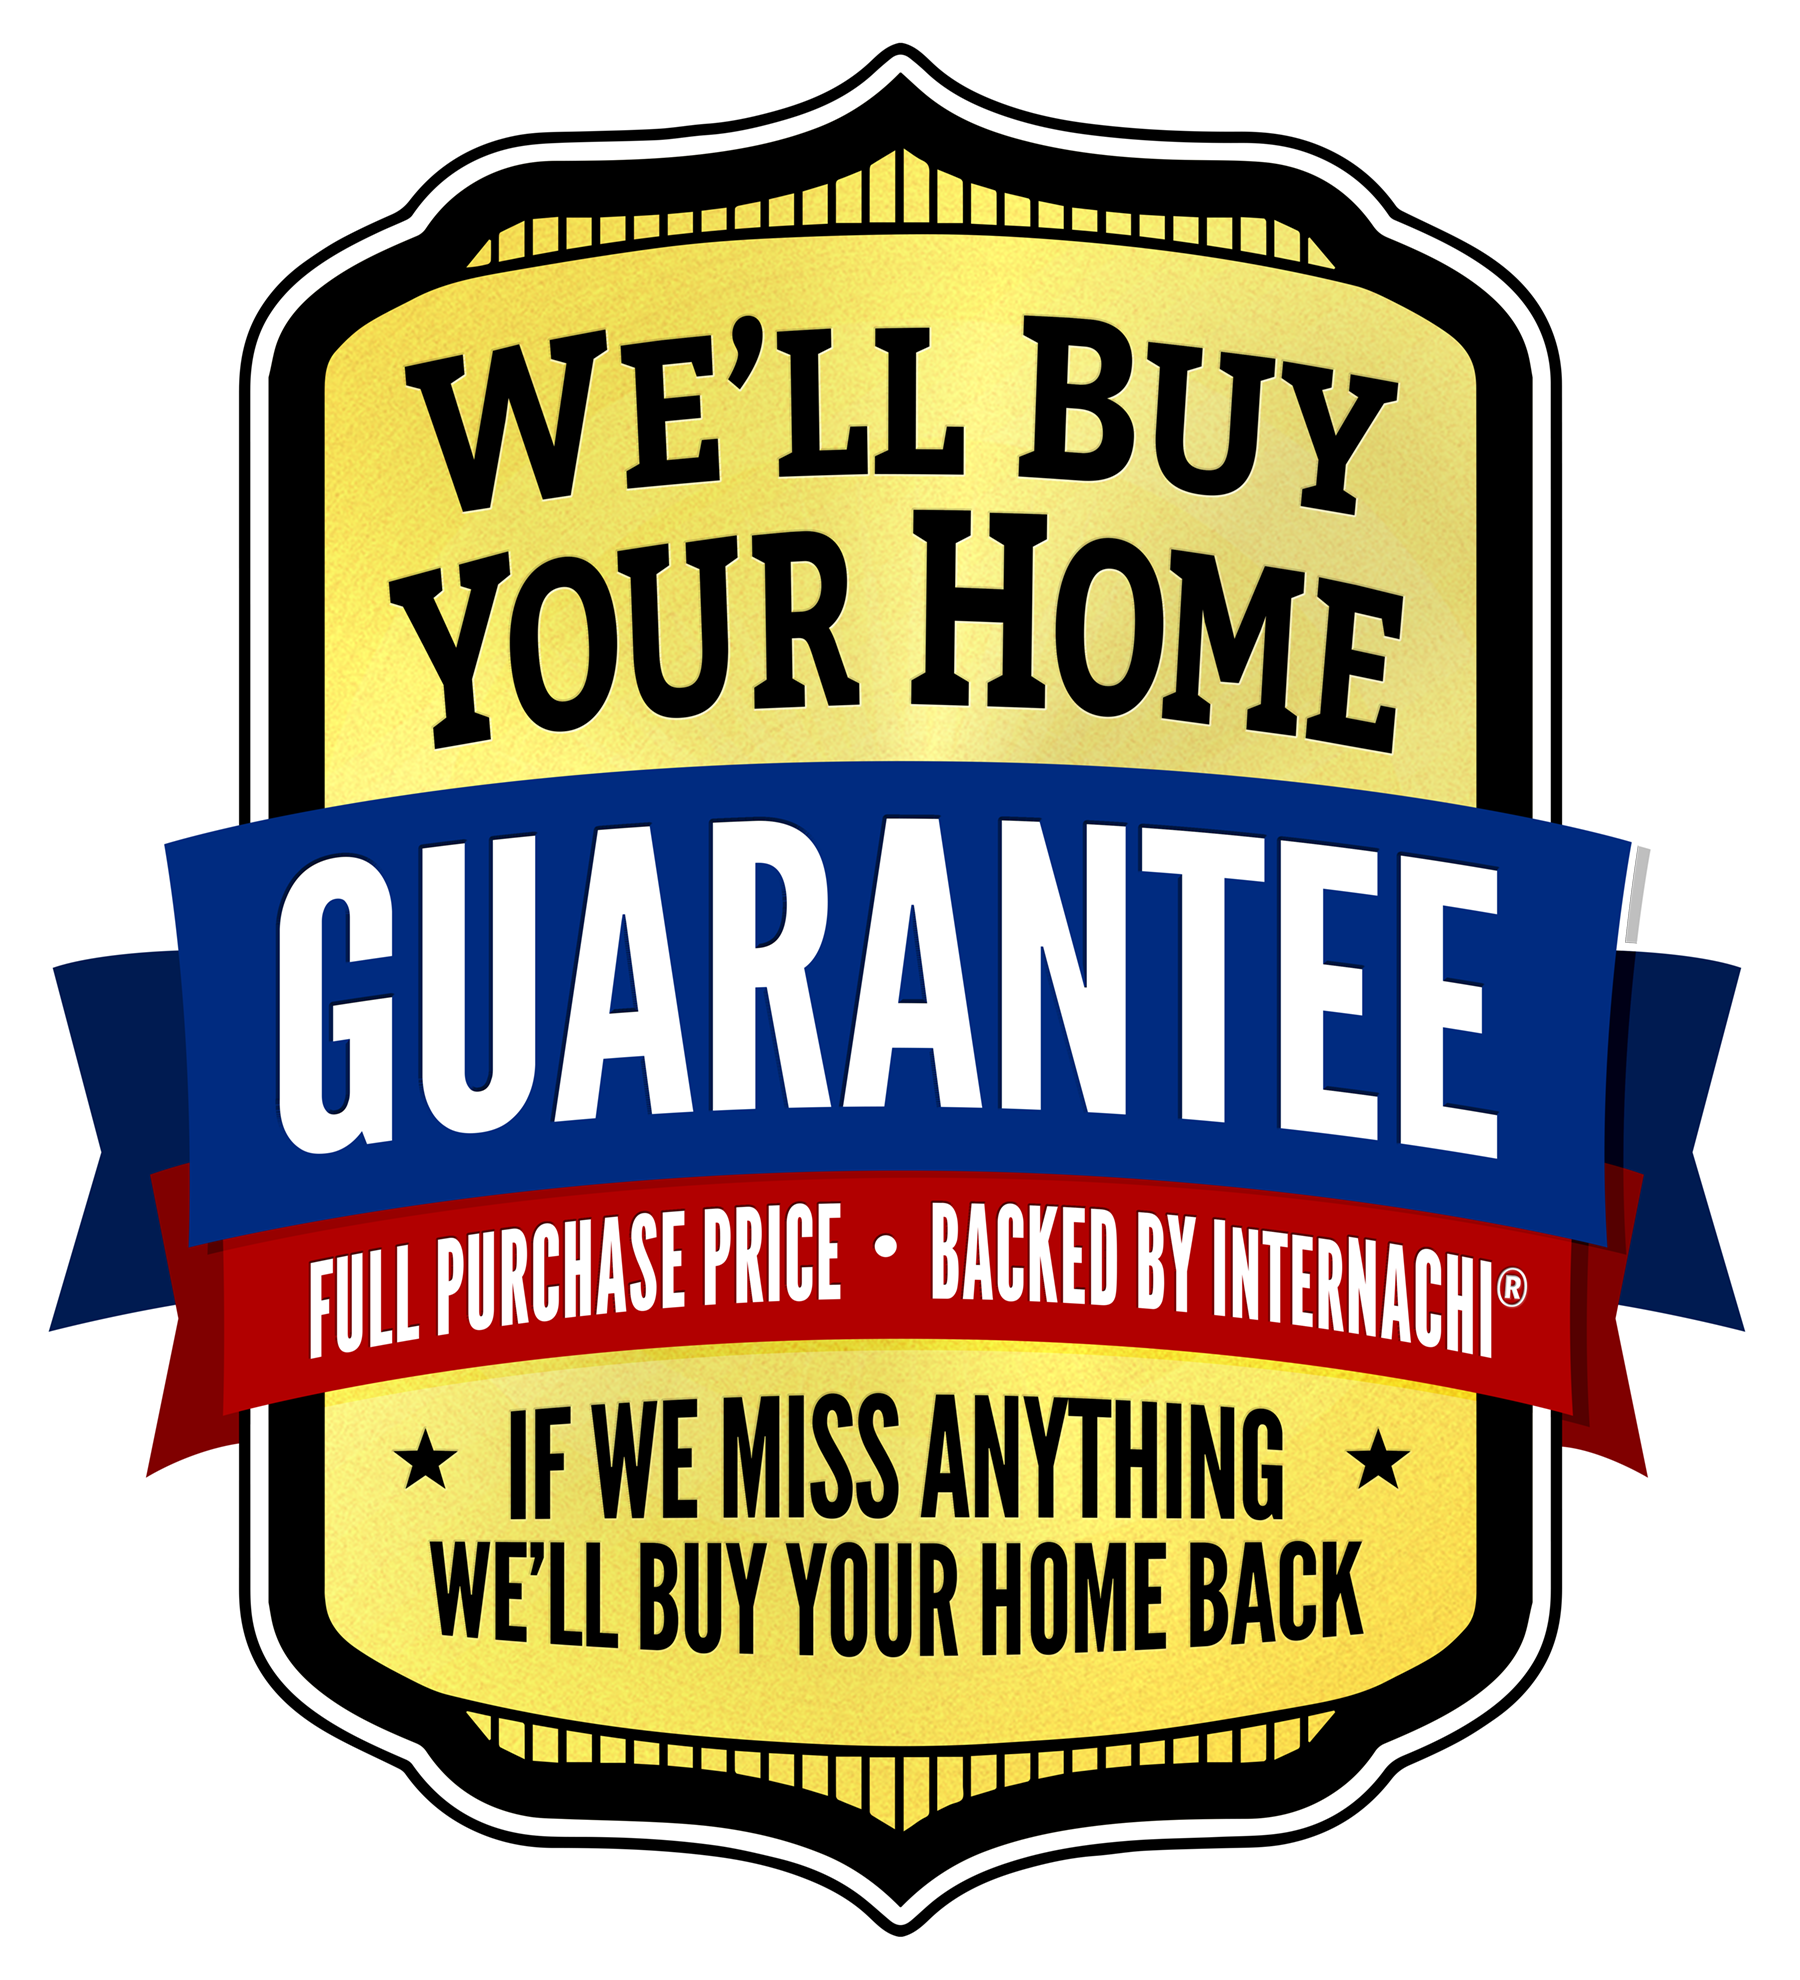 We'll Buy Your Home - Guarantee